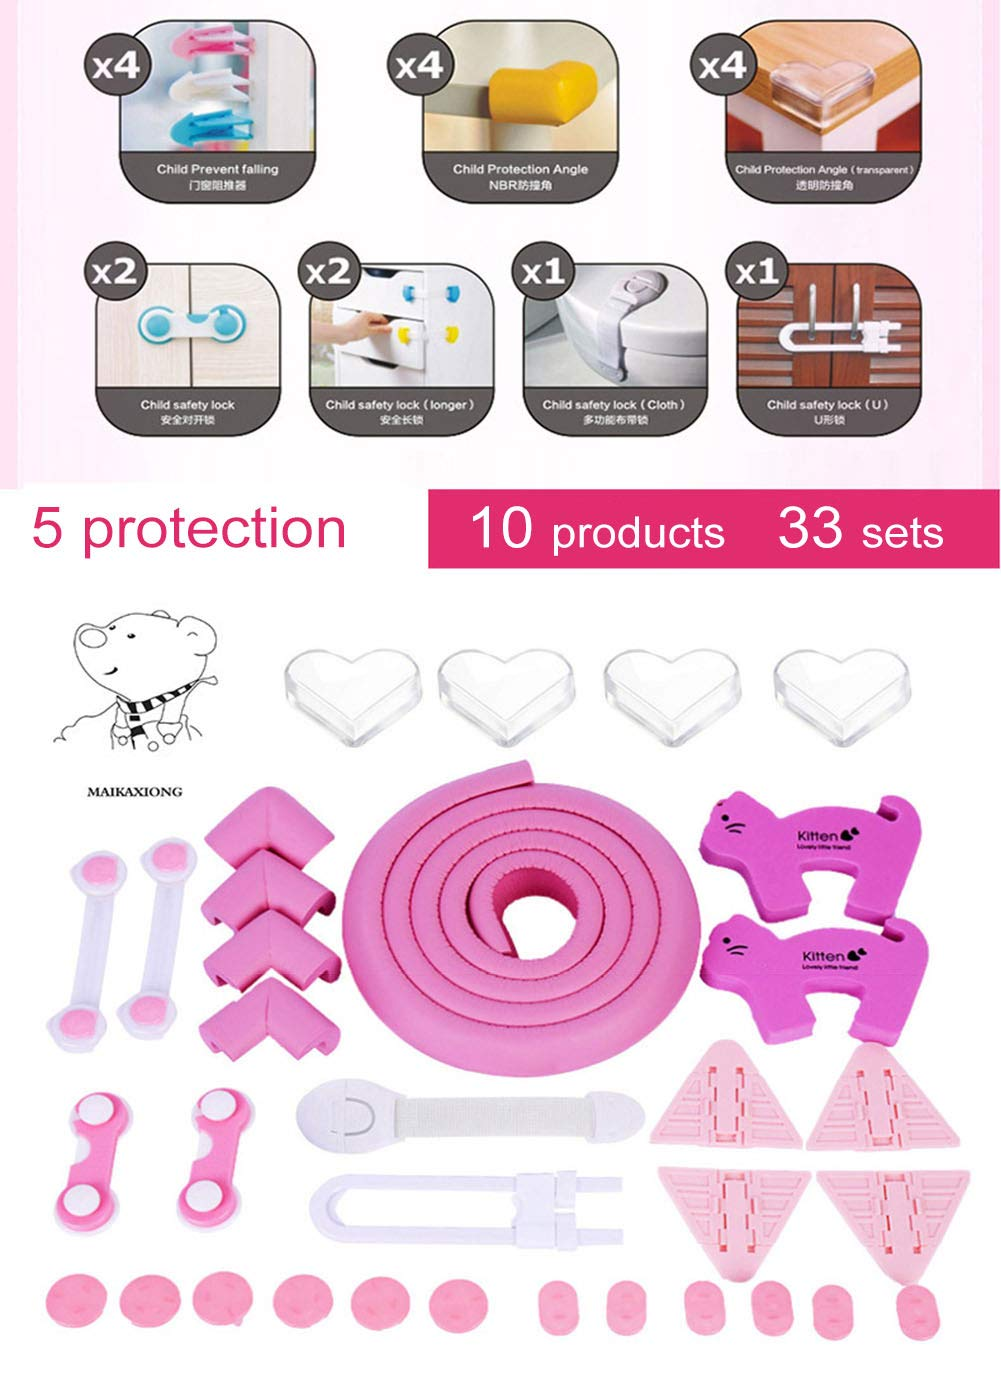 Baby Proofing Set -33 Pcs Child Safety - 6.5Ft Anti-Collision Bar 8 Corners 12 Outlet Covers Security Lock (Pink)